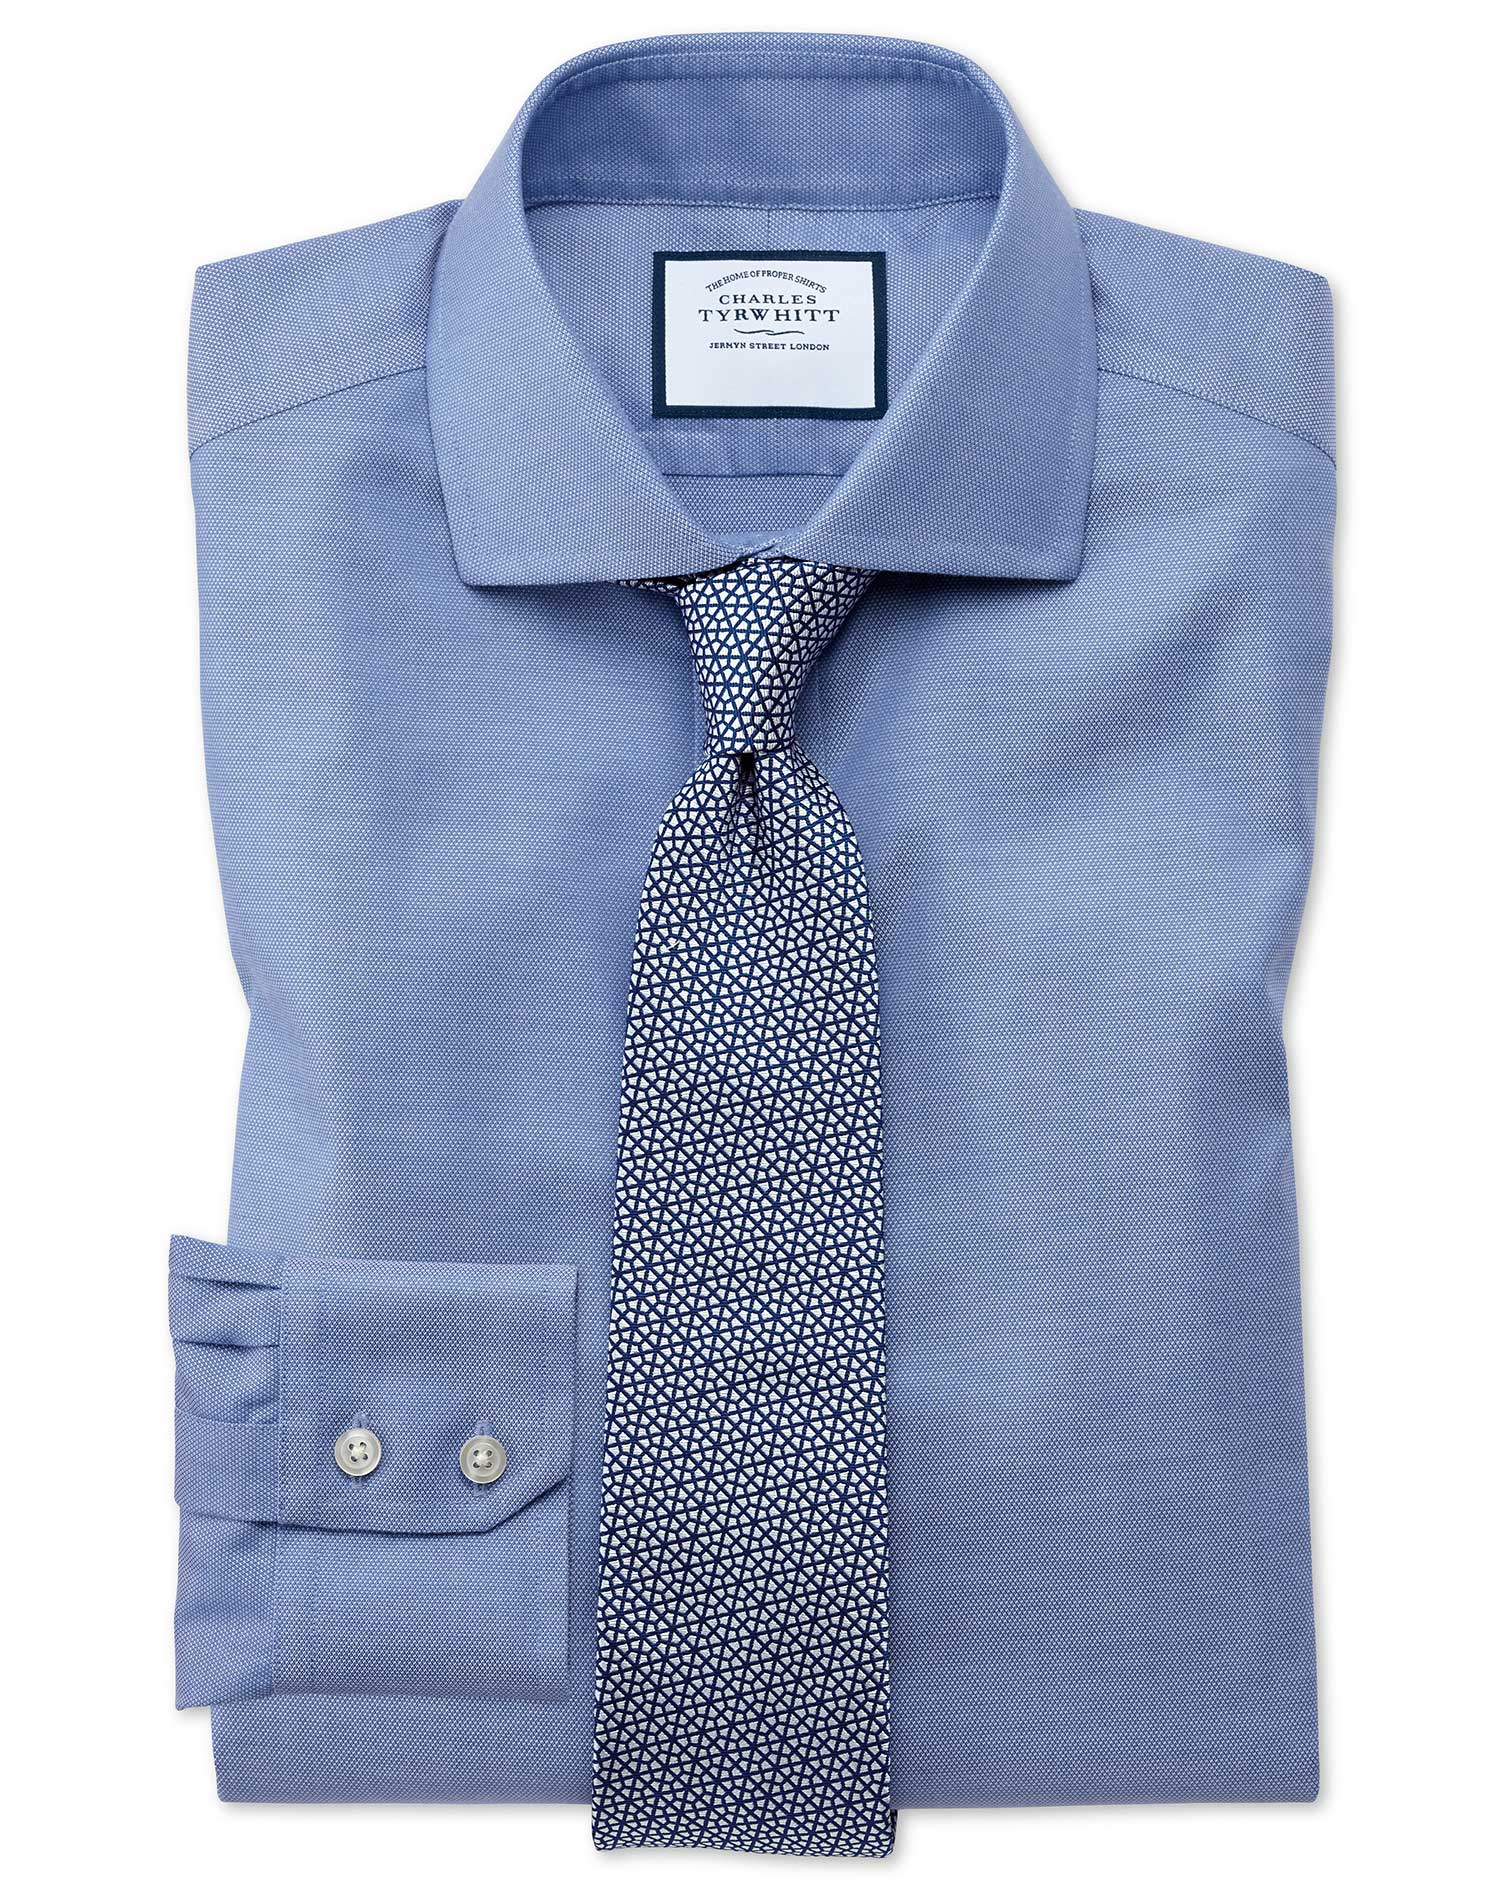 Extra Slim Fit Cutaway Non-Iron Cotton Stretch Oxford Mid Blue Formal Shirt Single Cuff Size 15/34 b